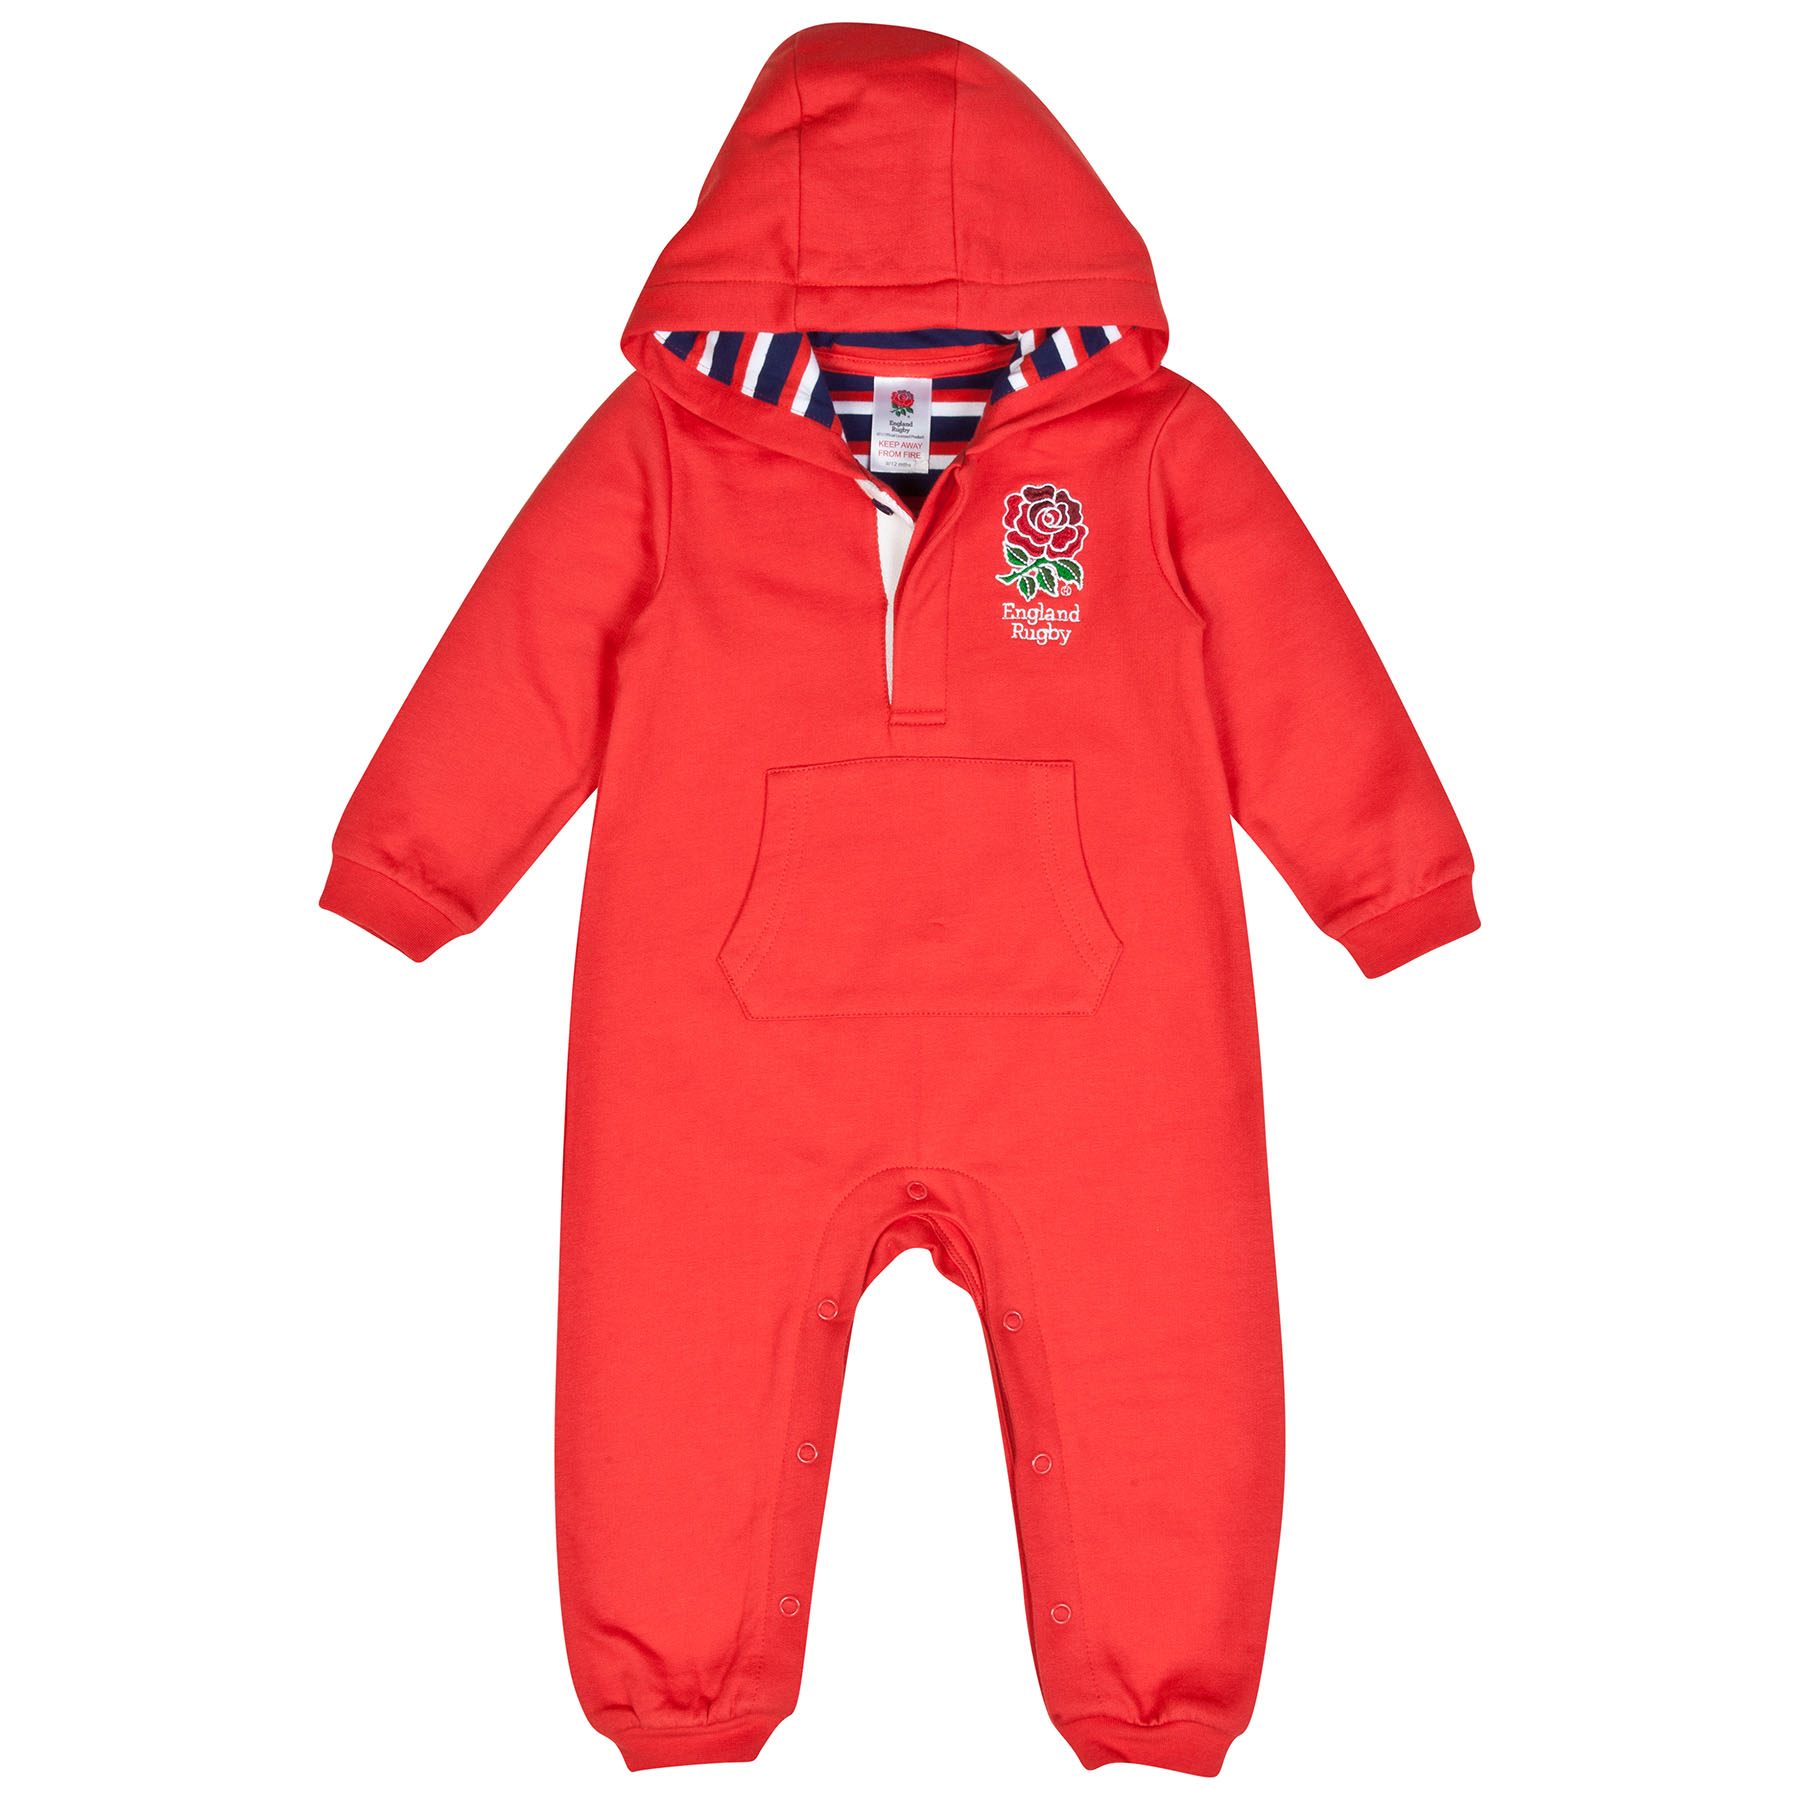 England All In One Fleece Suit